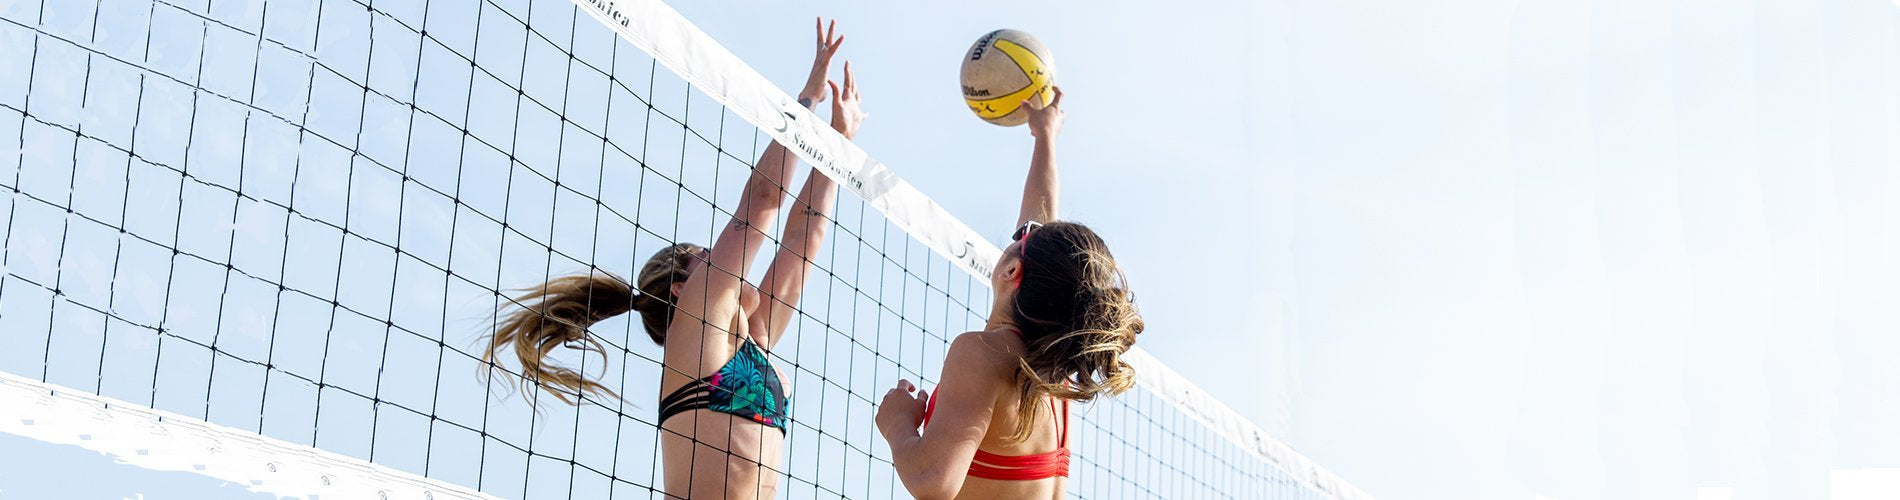 Beach volleyball player diving Pepper Swimwear active lifestyle